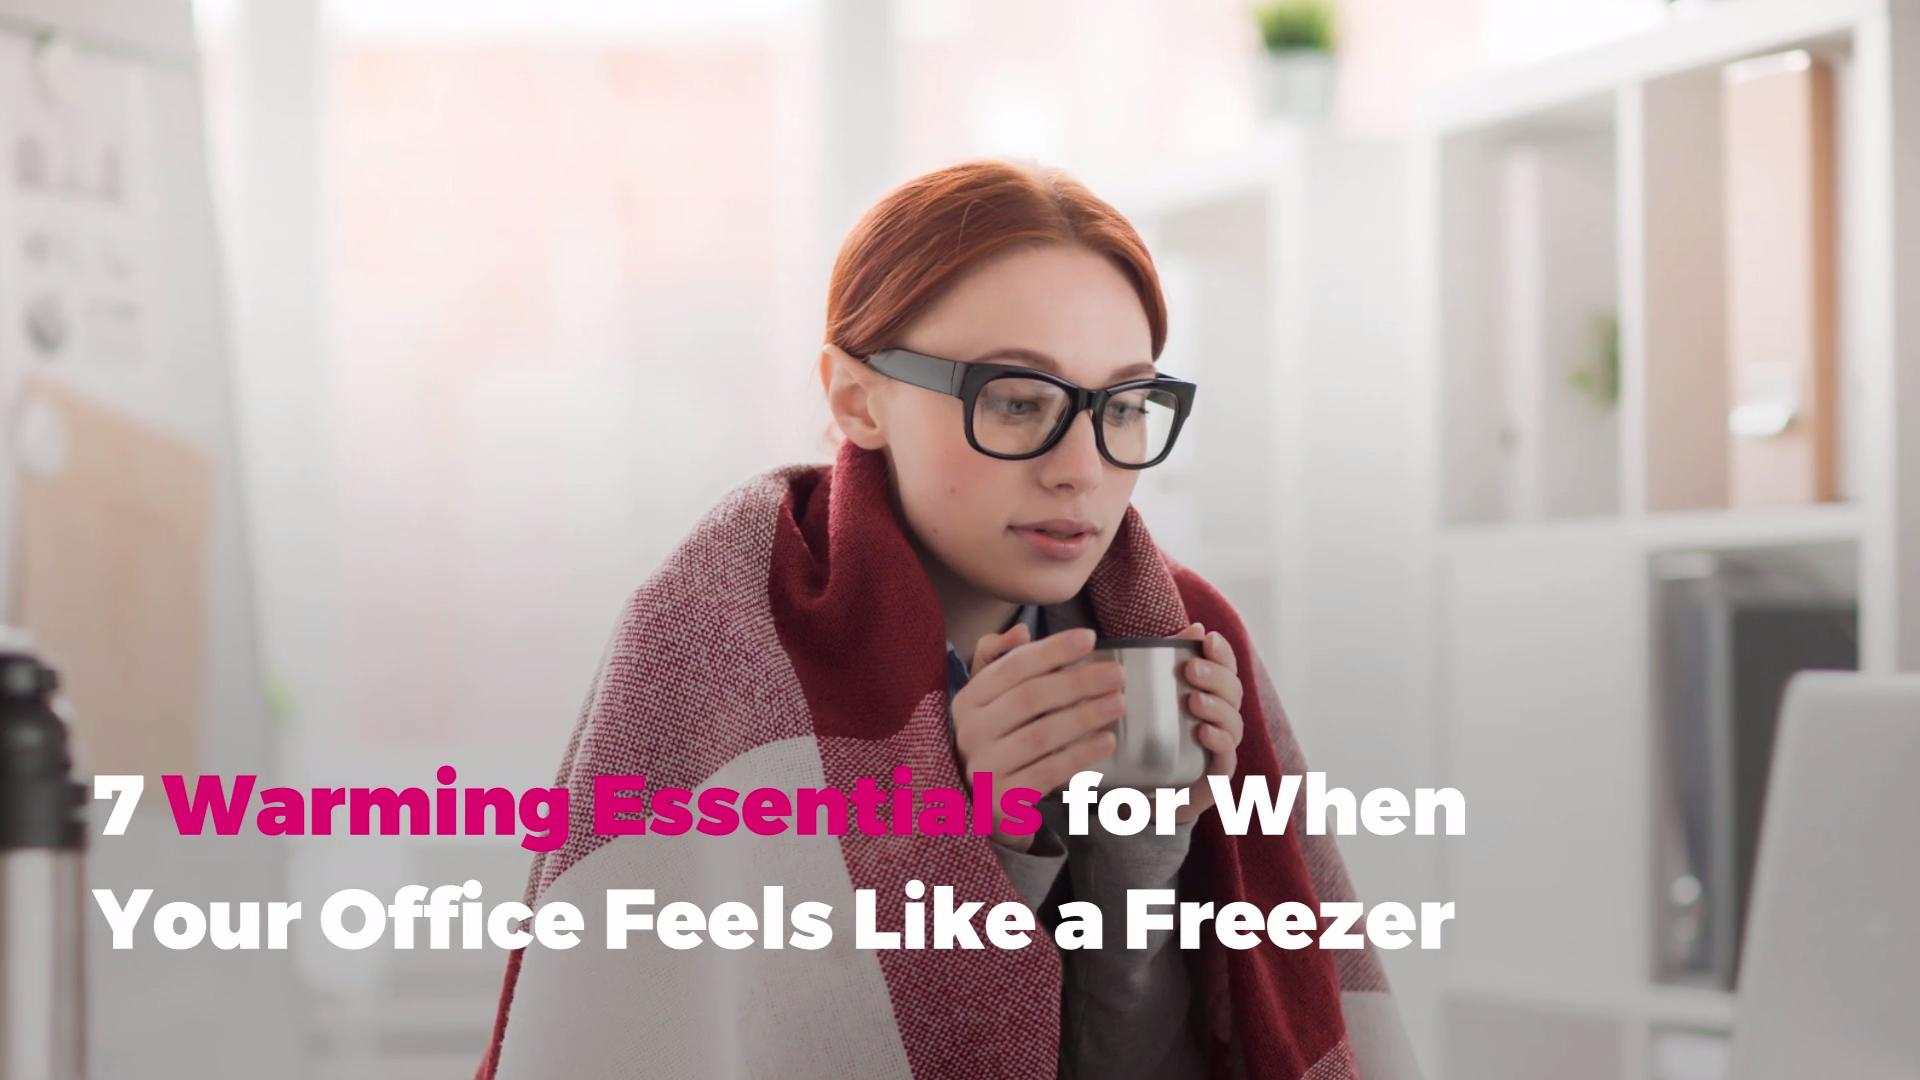 7 Warming Essentials for When Your Office Feels Like a Freezer